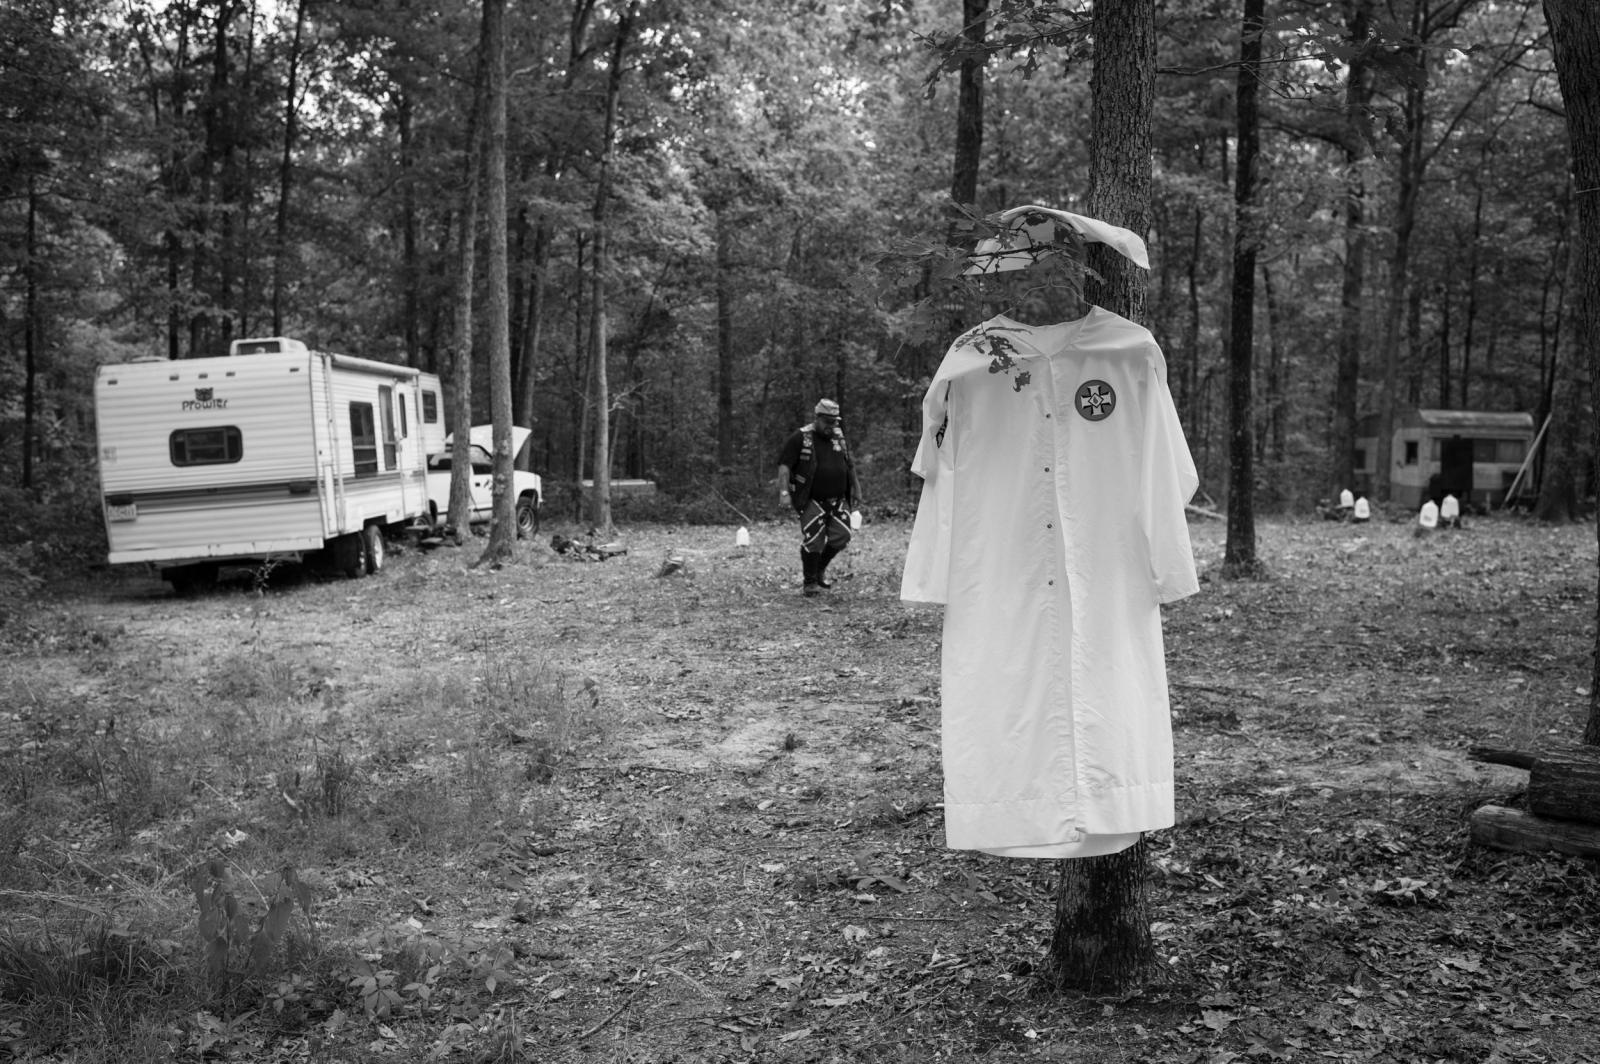 Missouri. A ceremonial Klan robe hangs by a tree shortly before a cross lighting ceremony, which will take place at dusk.